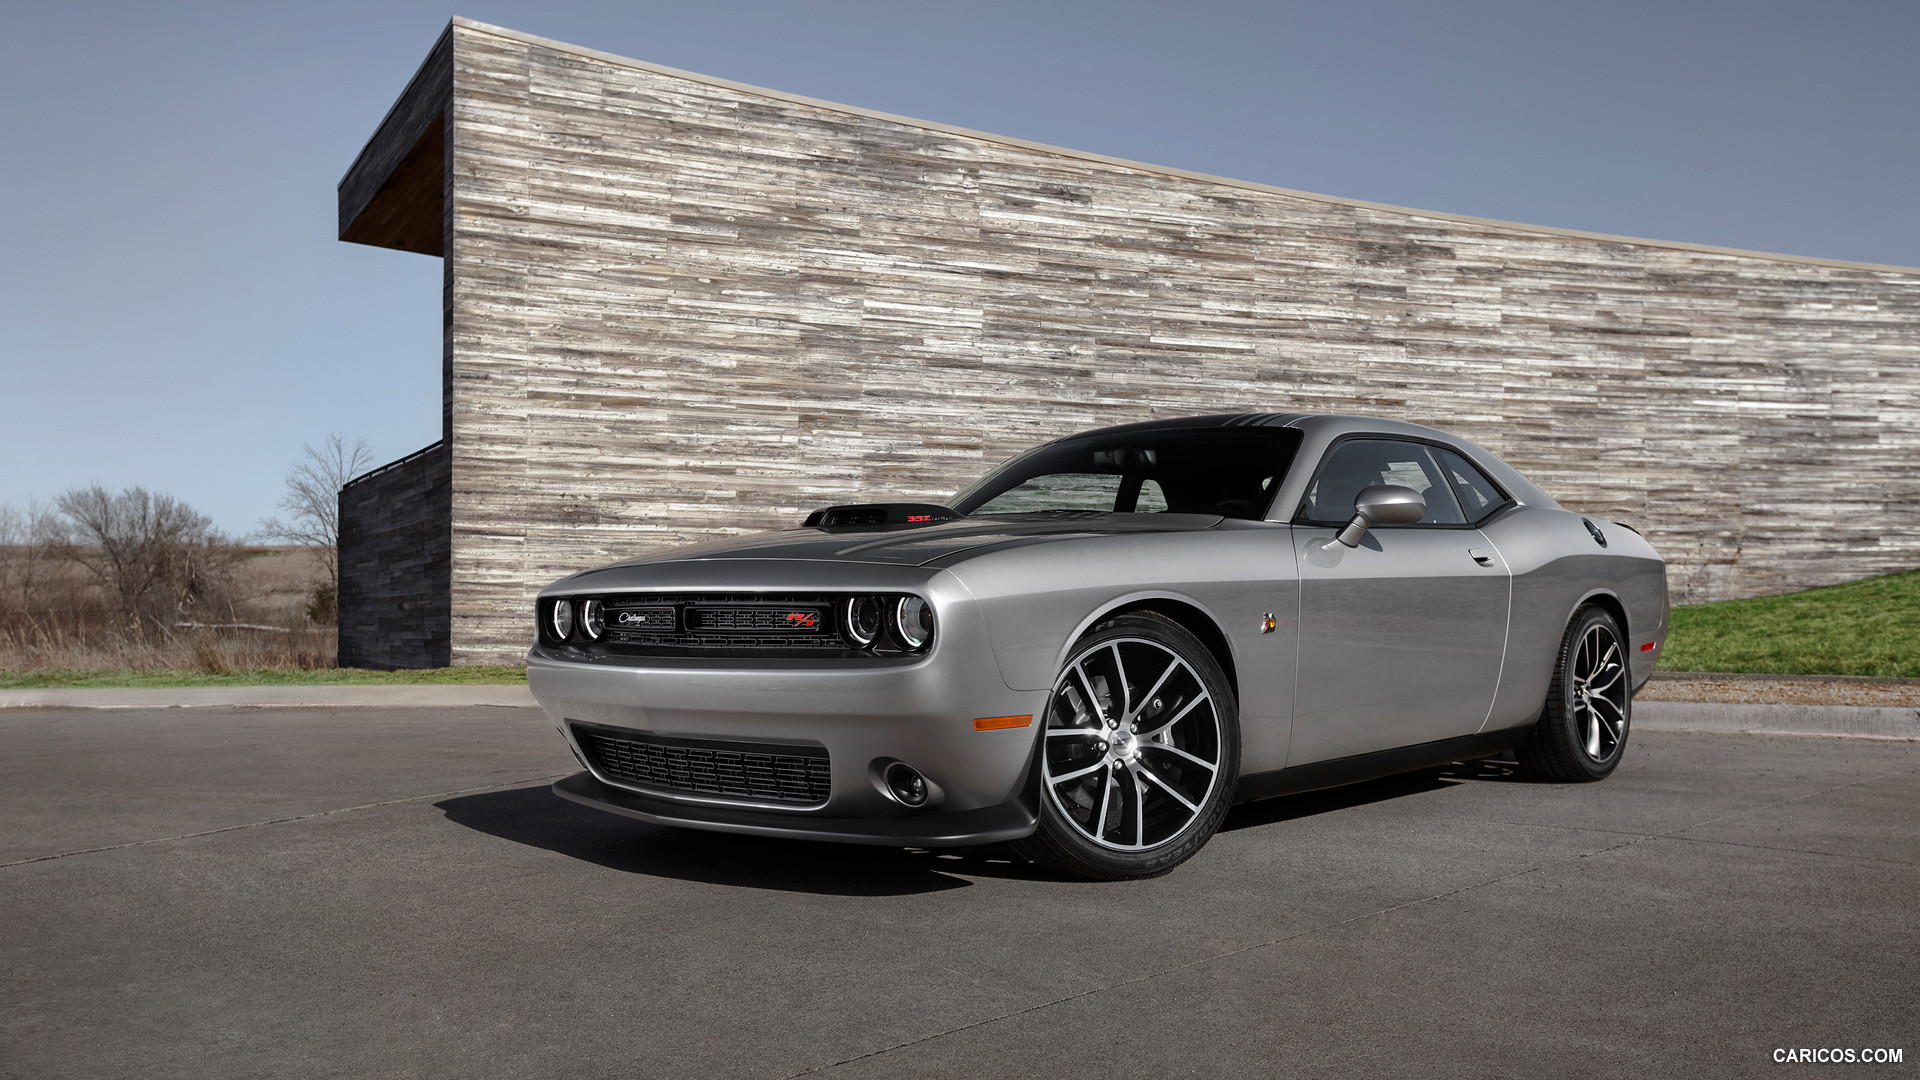 New 2015 Dodge Challenger Deals and Lease Offers